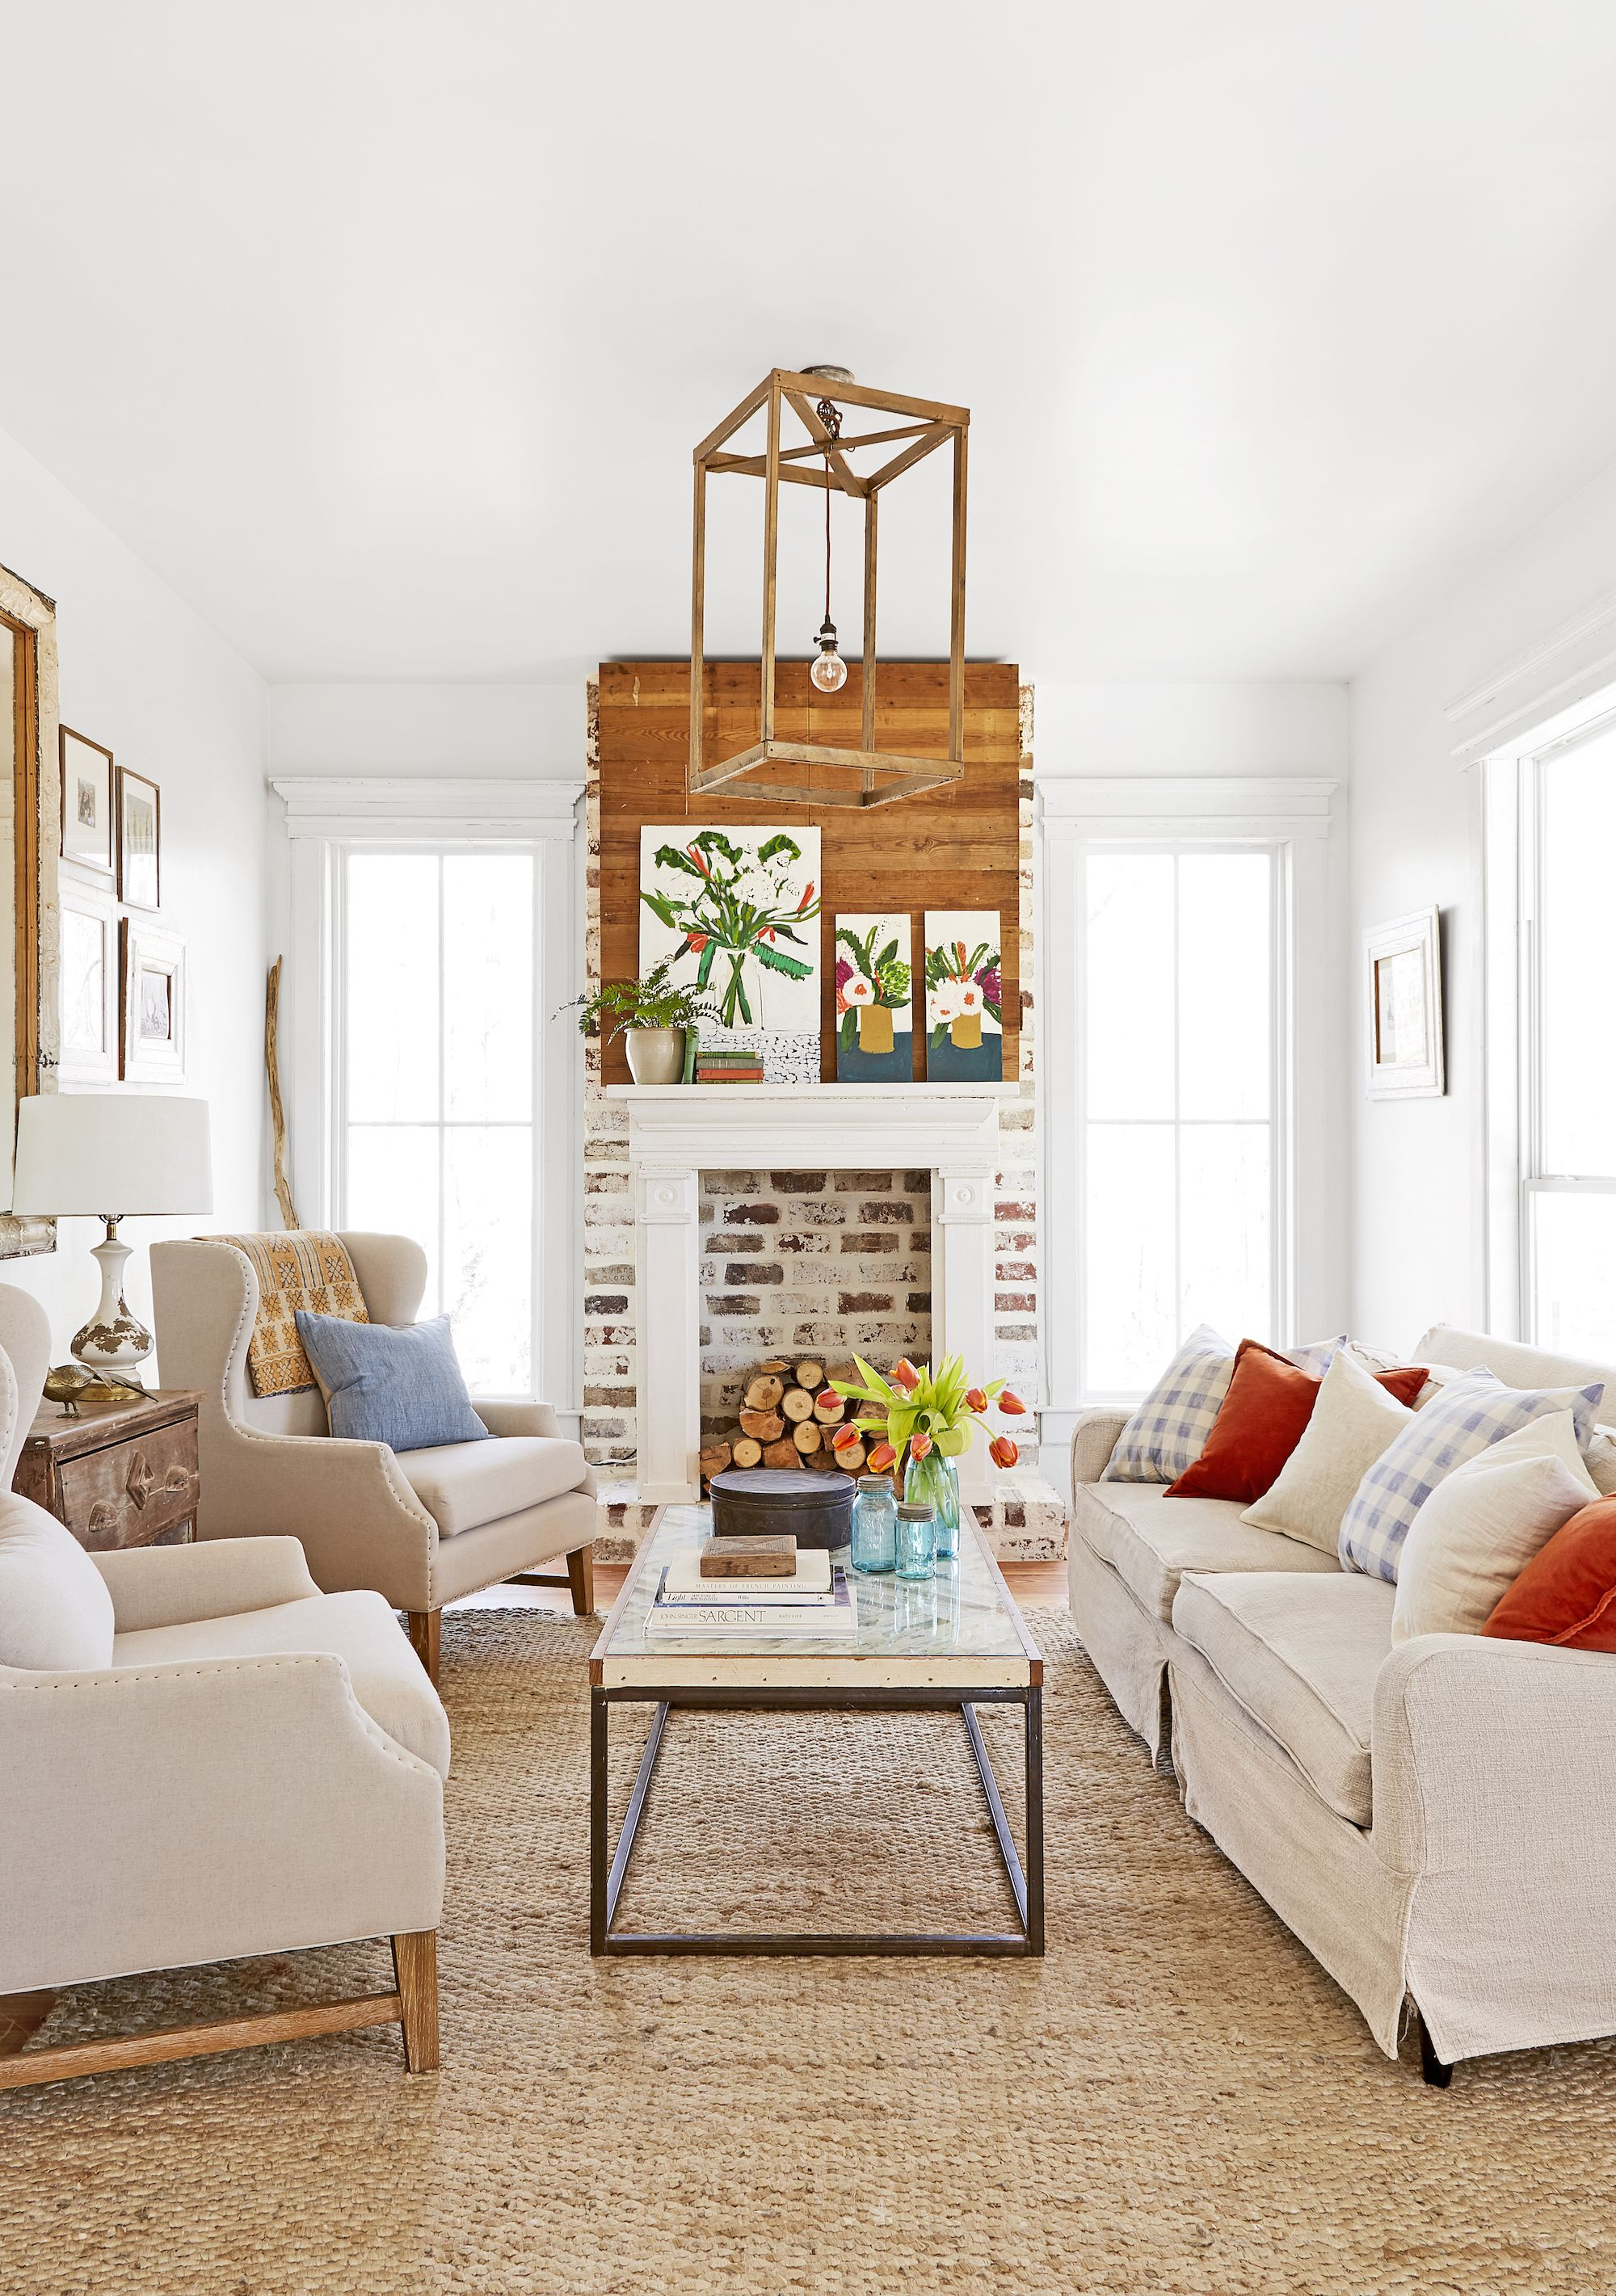 20 Fireplace Decorating Ideas Best Fireplace Design throughout 14 Awesome Concepts of How to Craft How To Set Up A Living Room